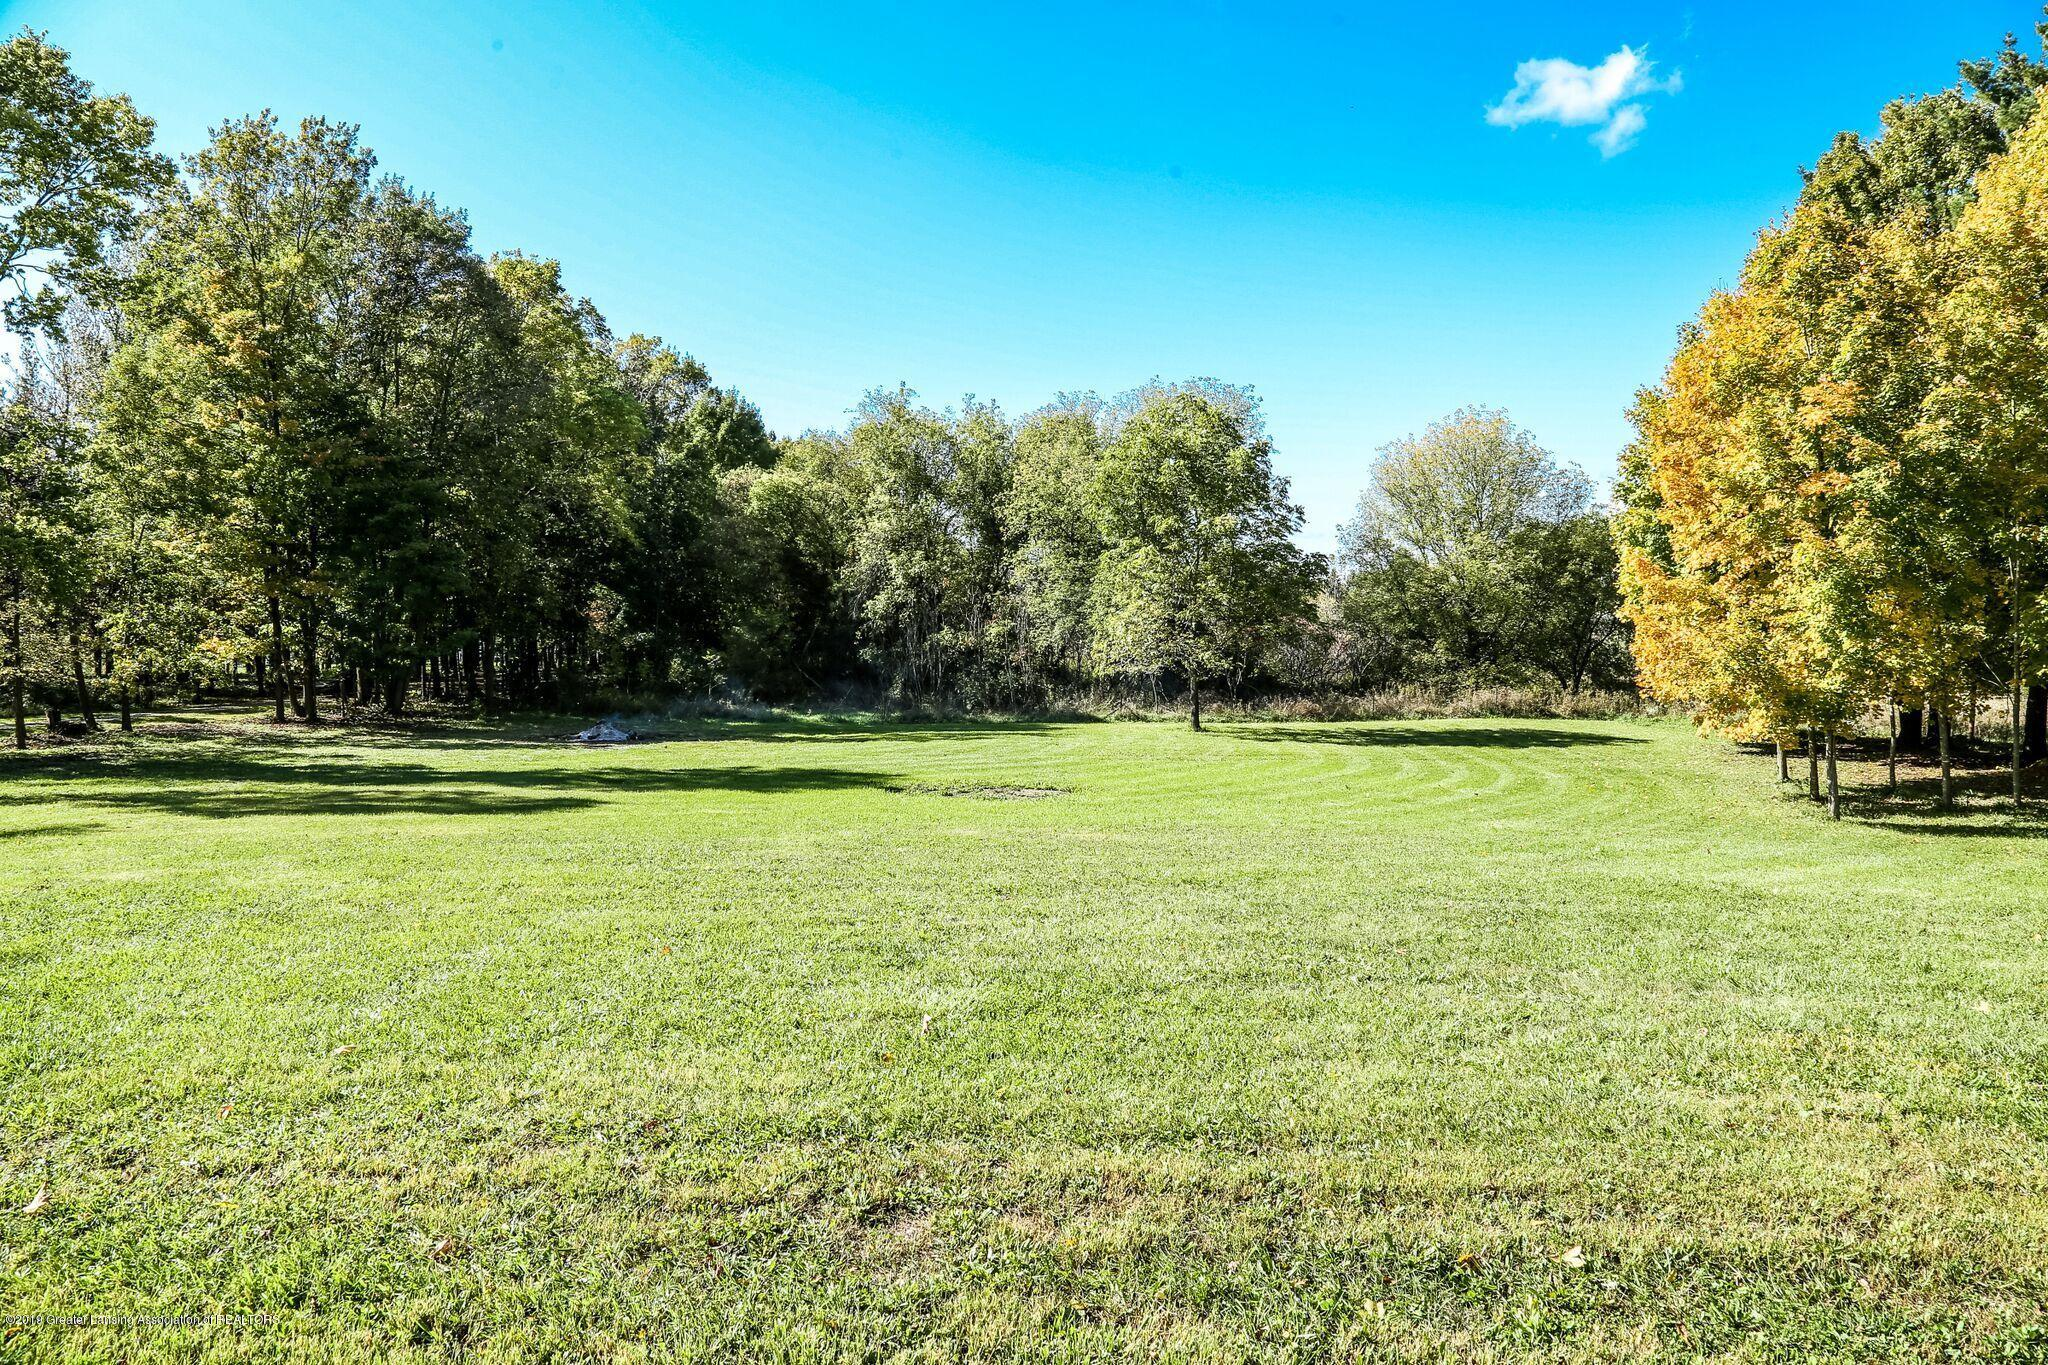 802 S Waverly Rd - Vacant Land - 7